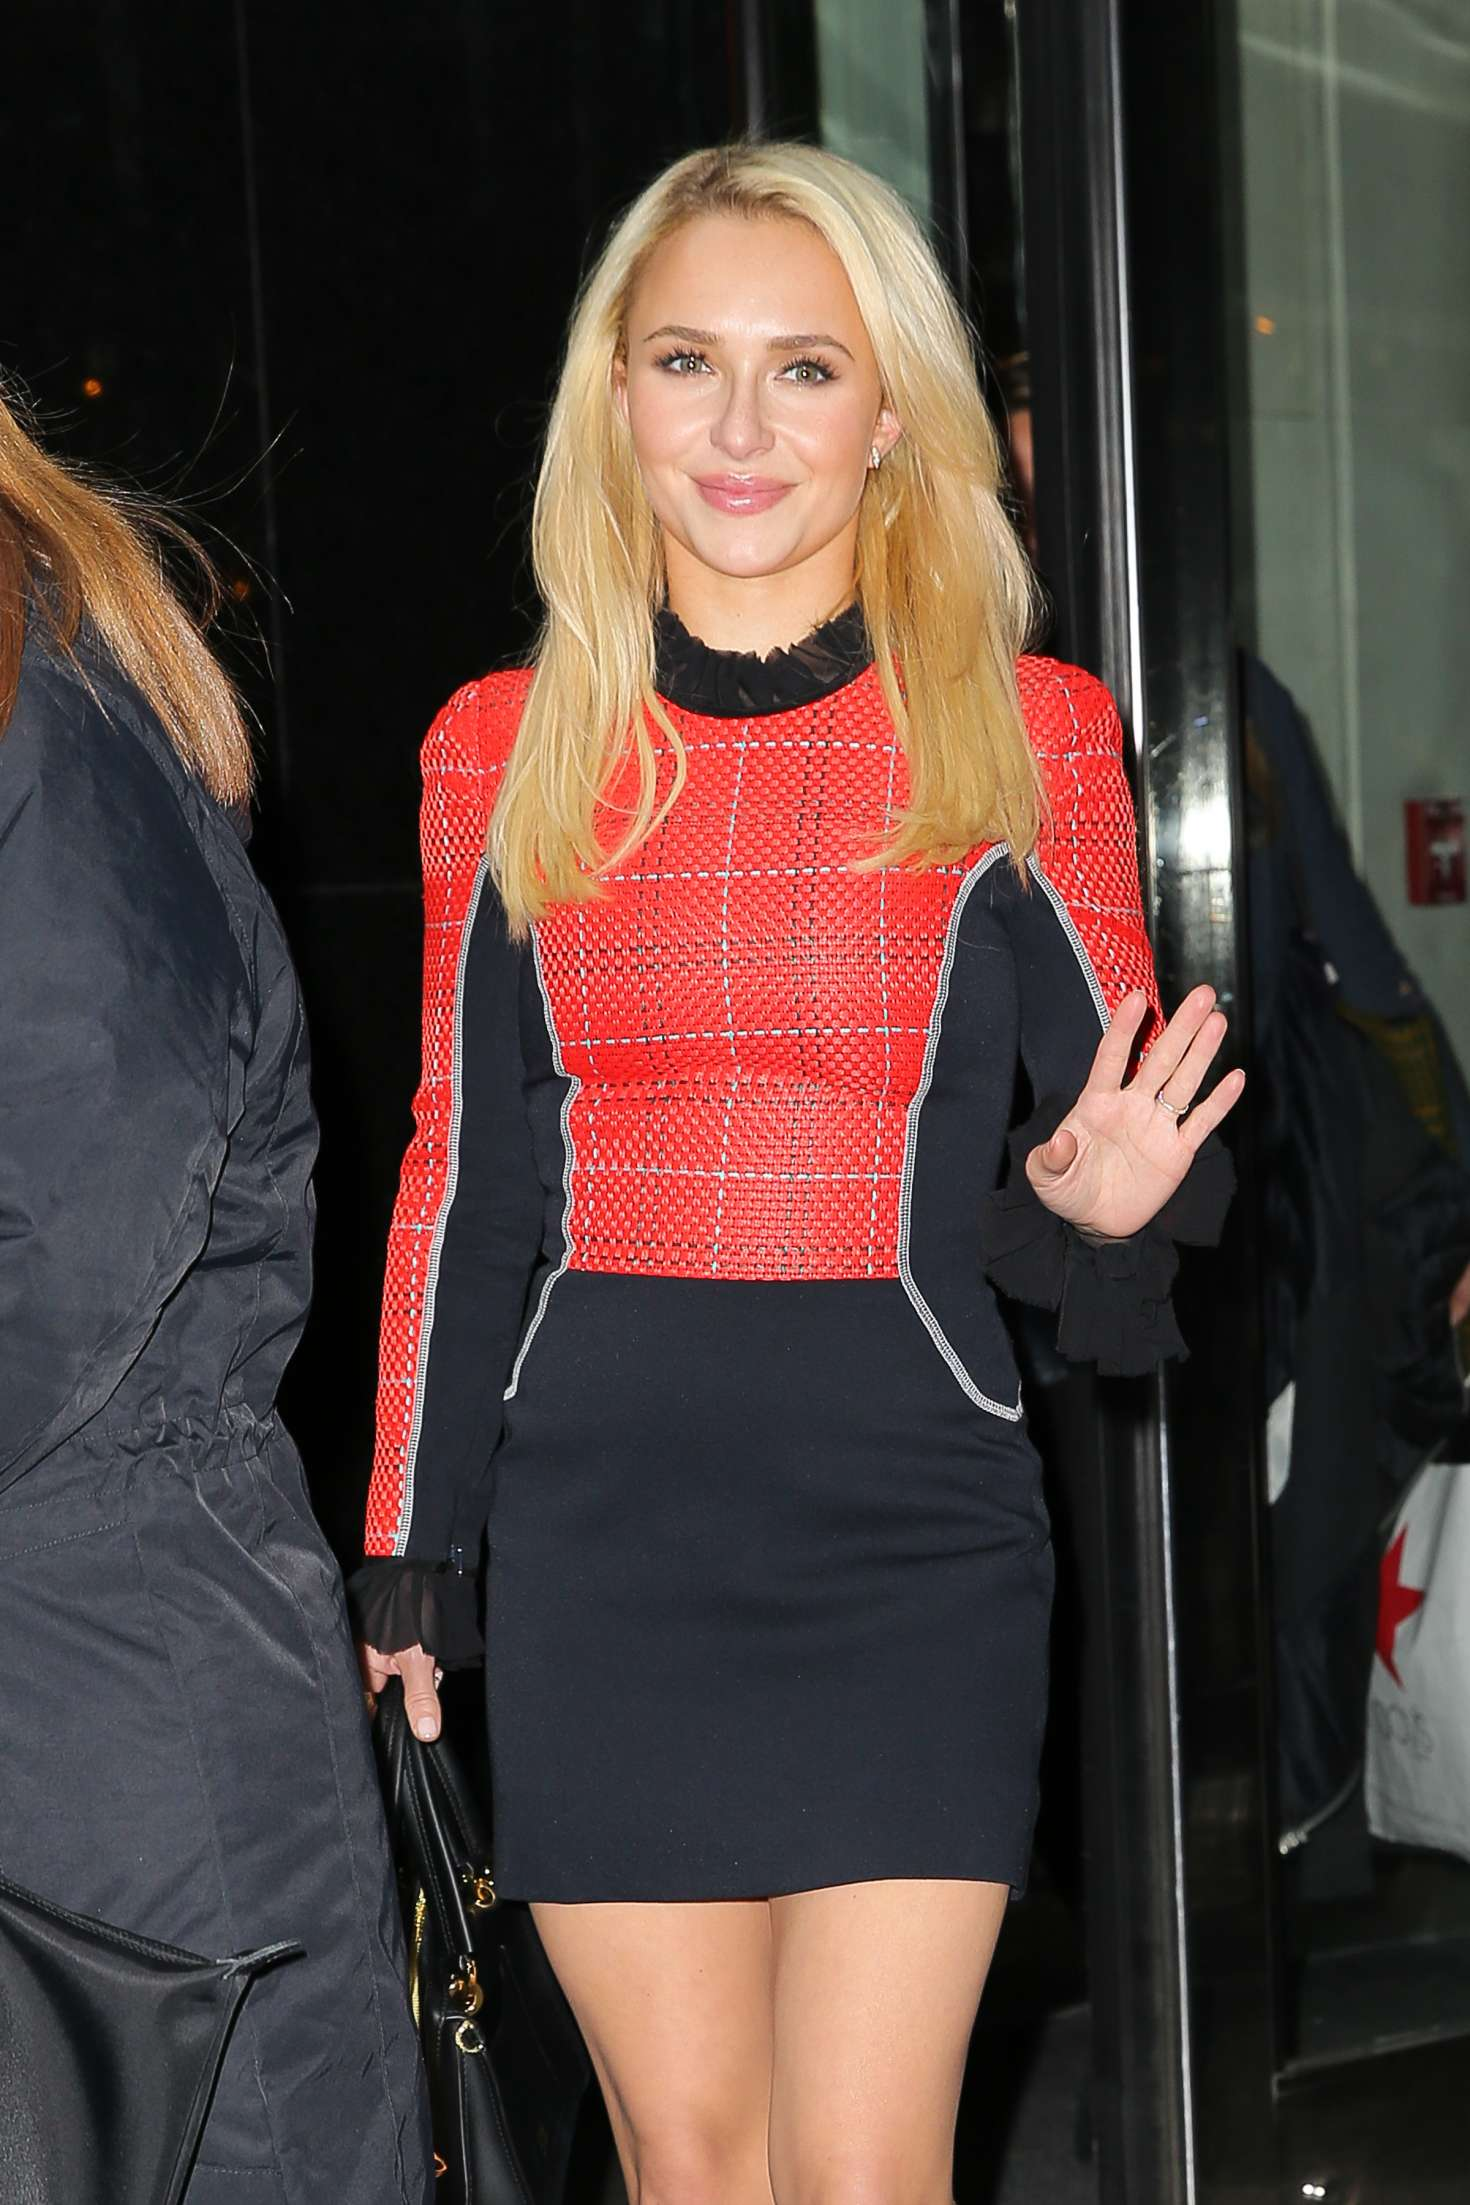 Hayden Panettiere in a Mini Red And Black Dress in New York City